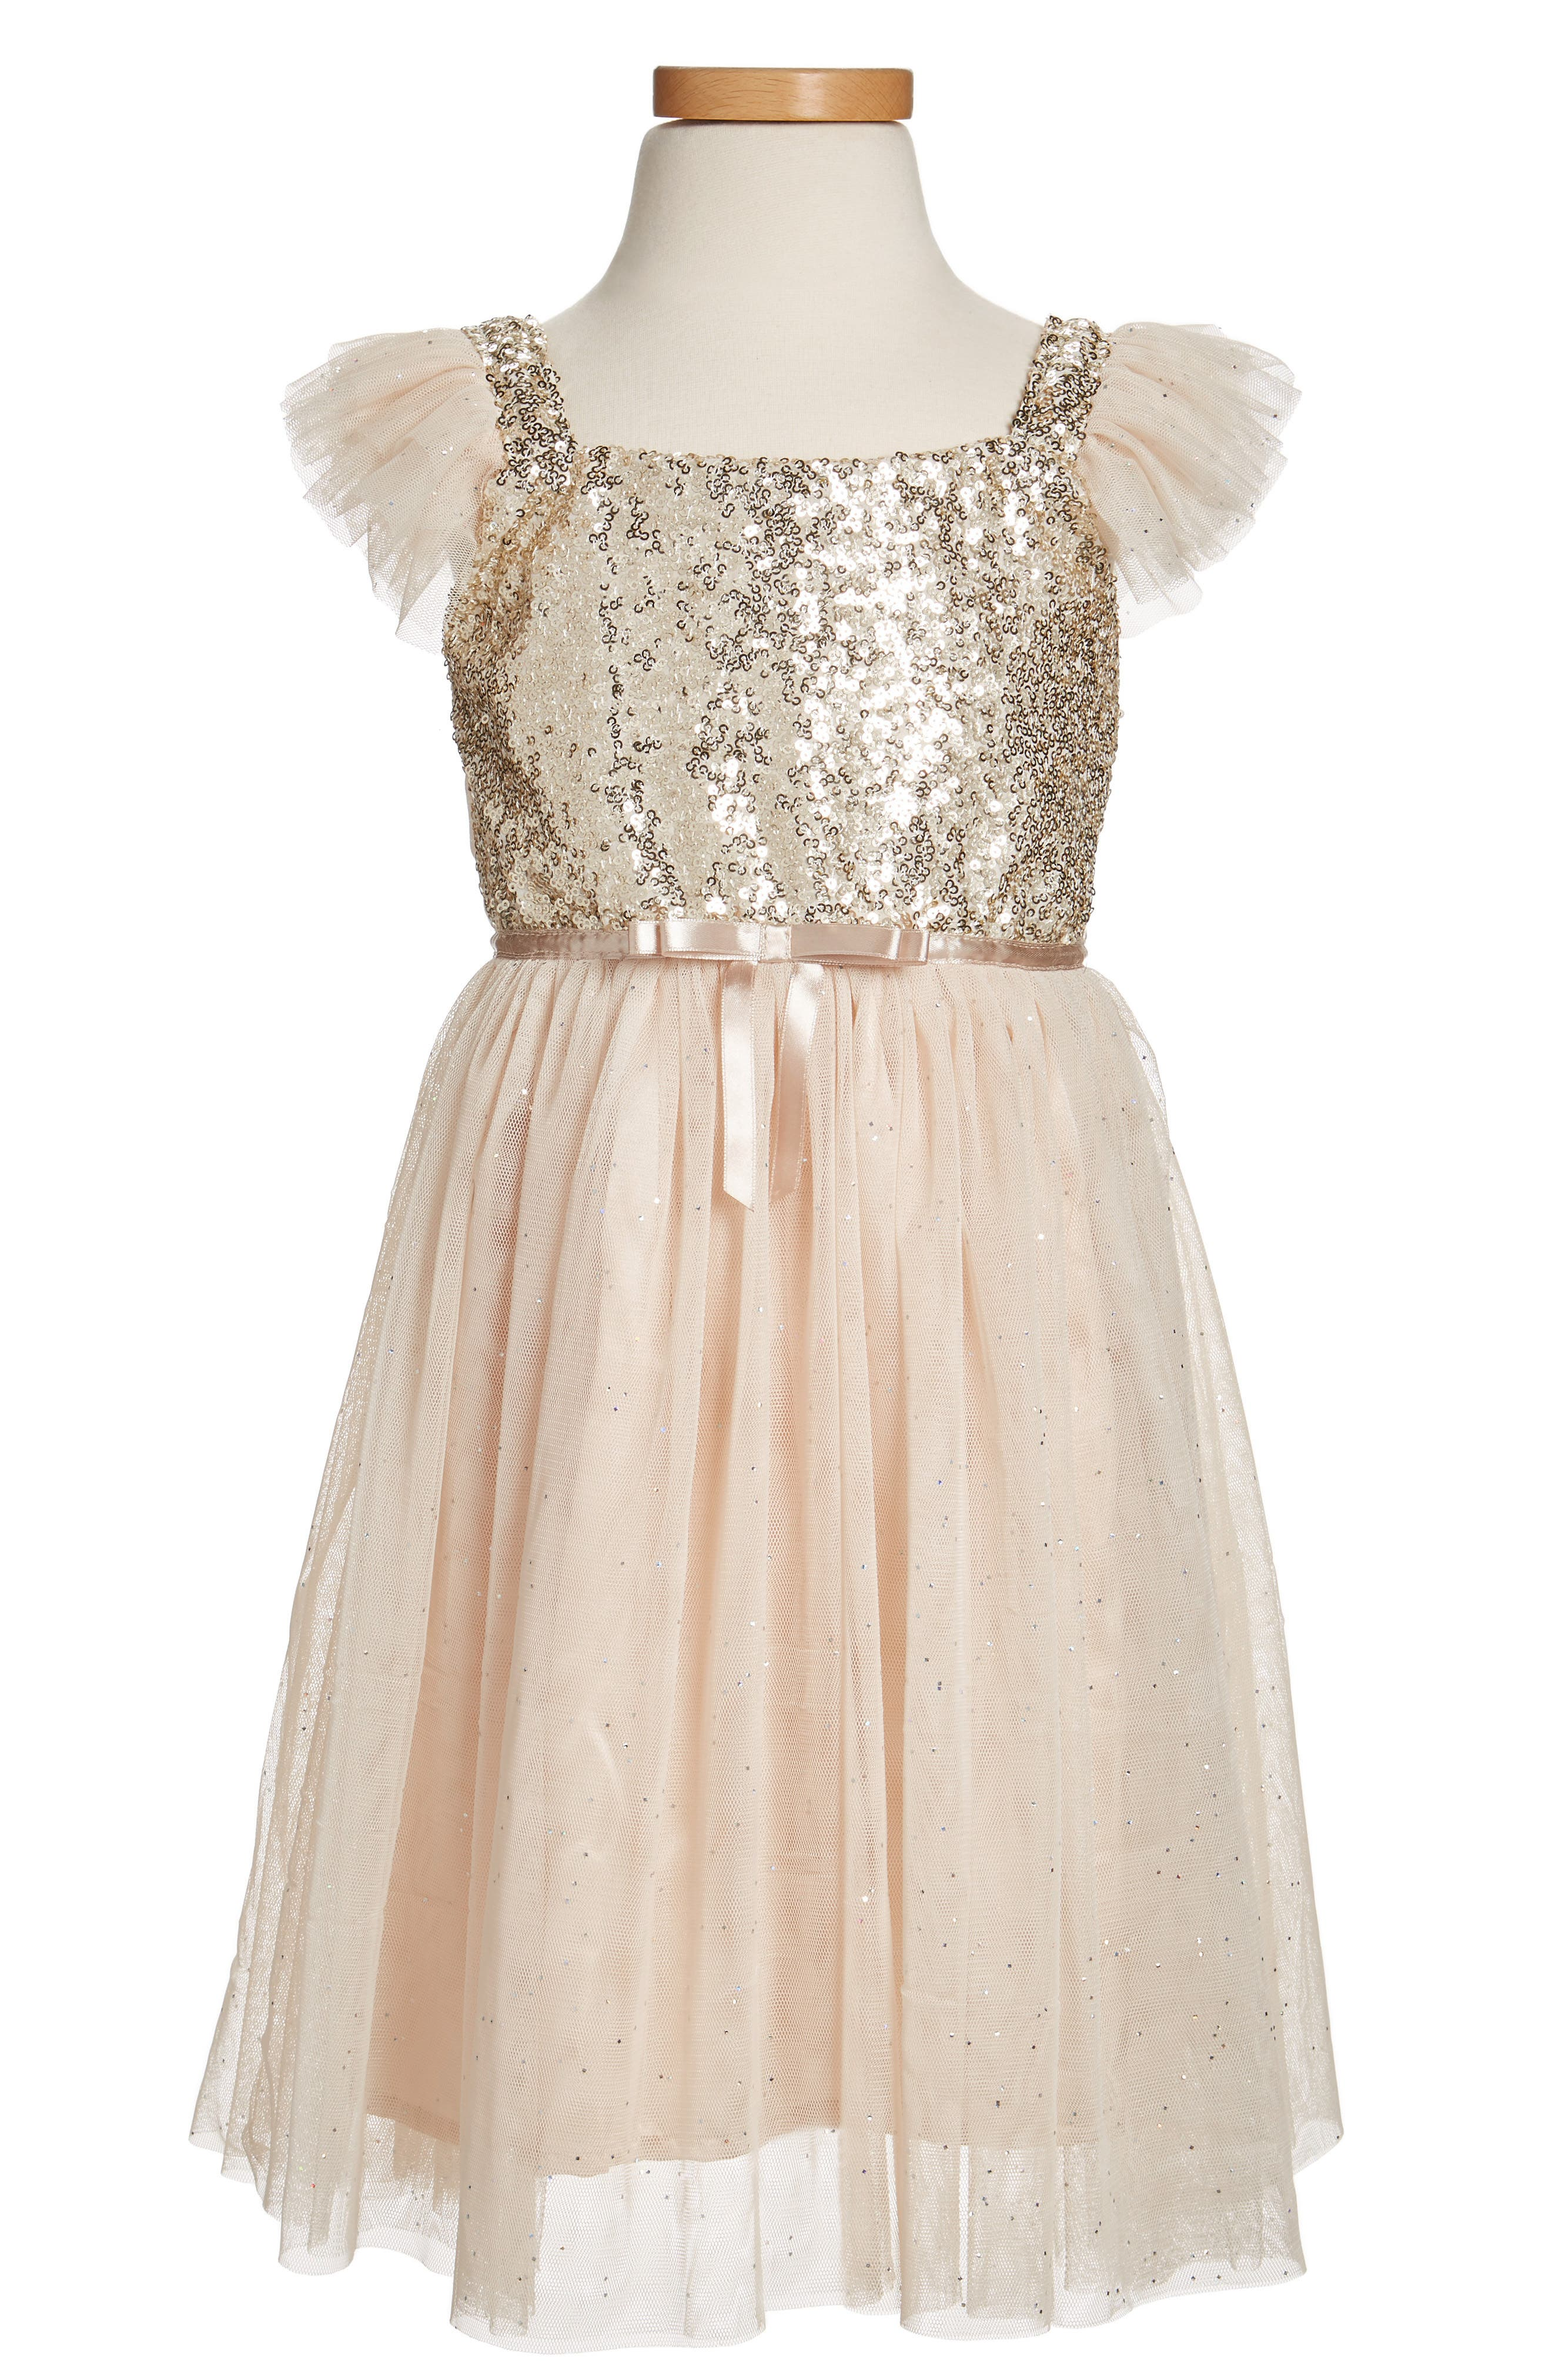 Sequin Bodice Tulle Dress,                             Main thumbnail 1, color,                             Ivory/ Gold